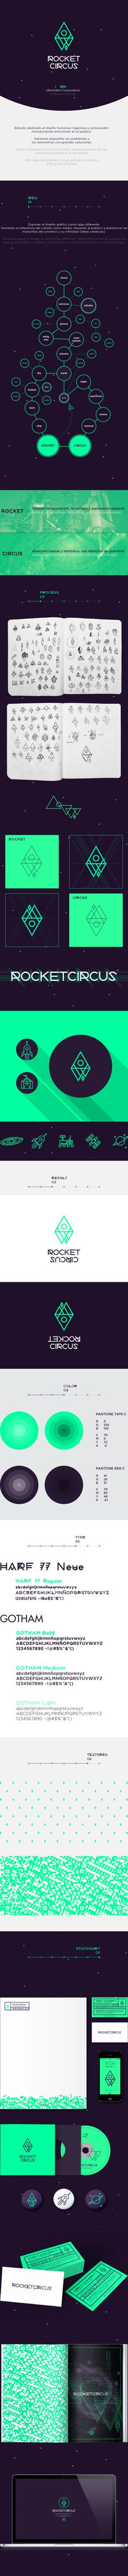 ROCKETCIRCUS by ROCKETCIRCUS, via Behance